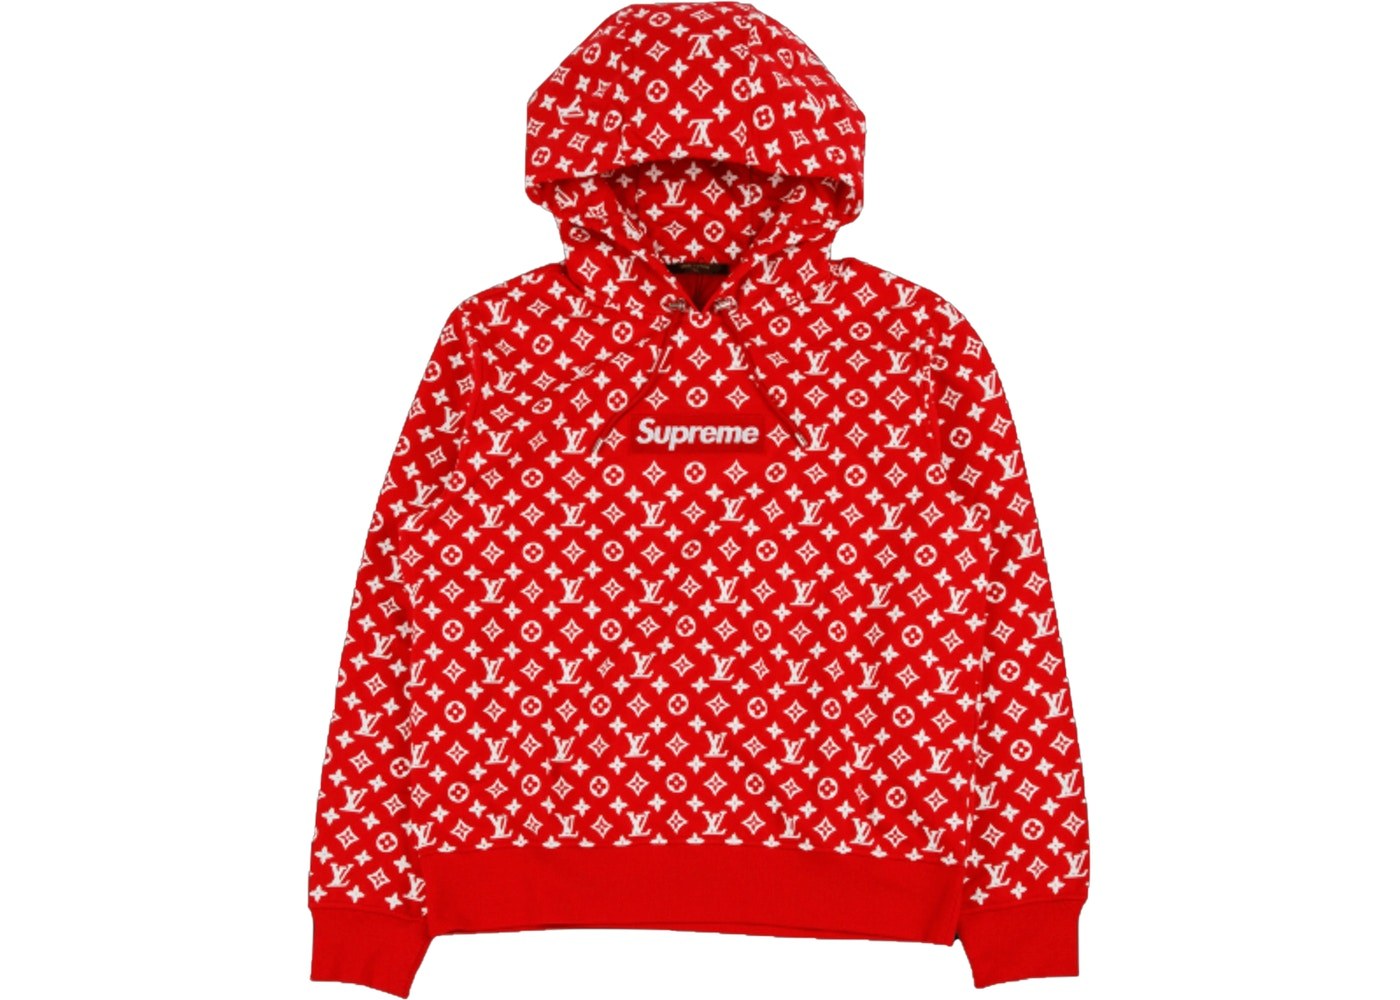 Supreme X Louis Vuitton Box Logo Hooded